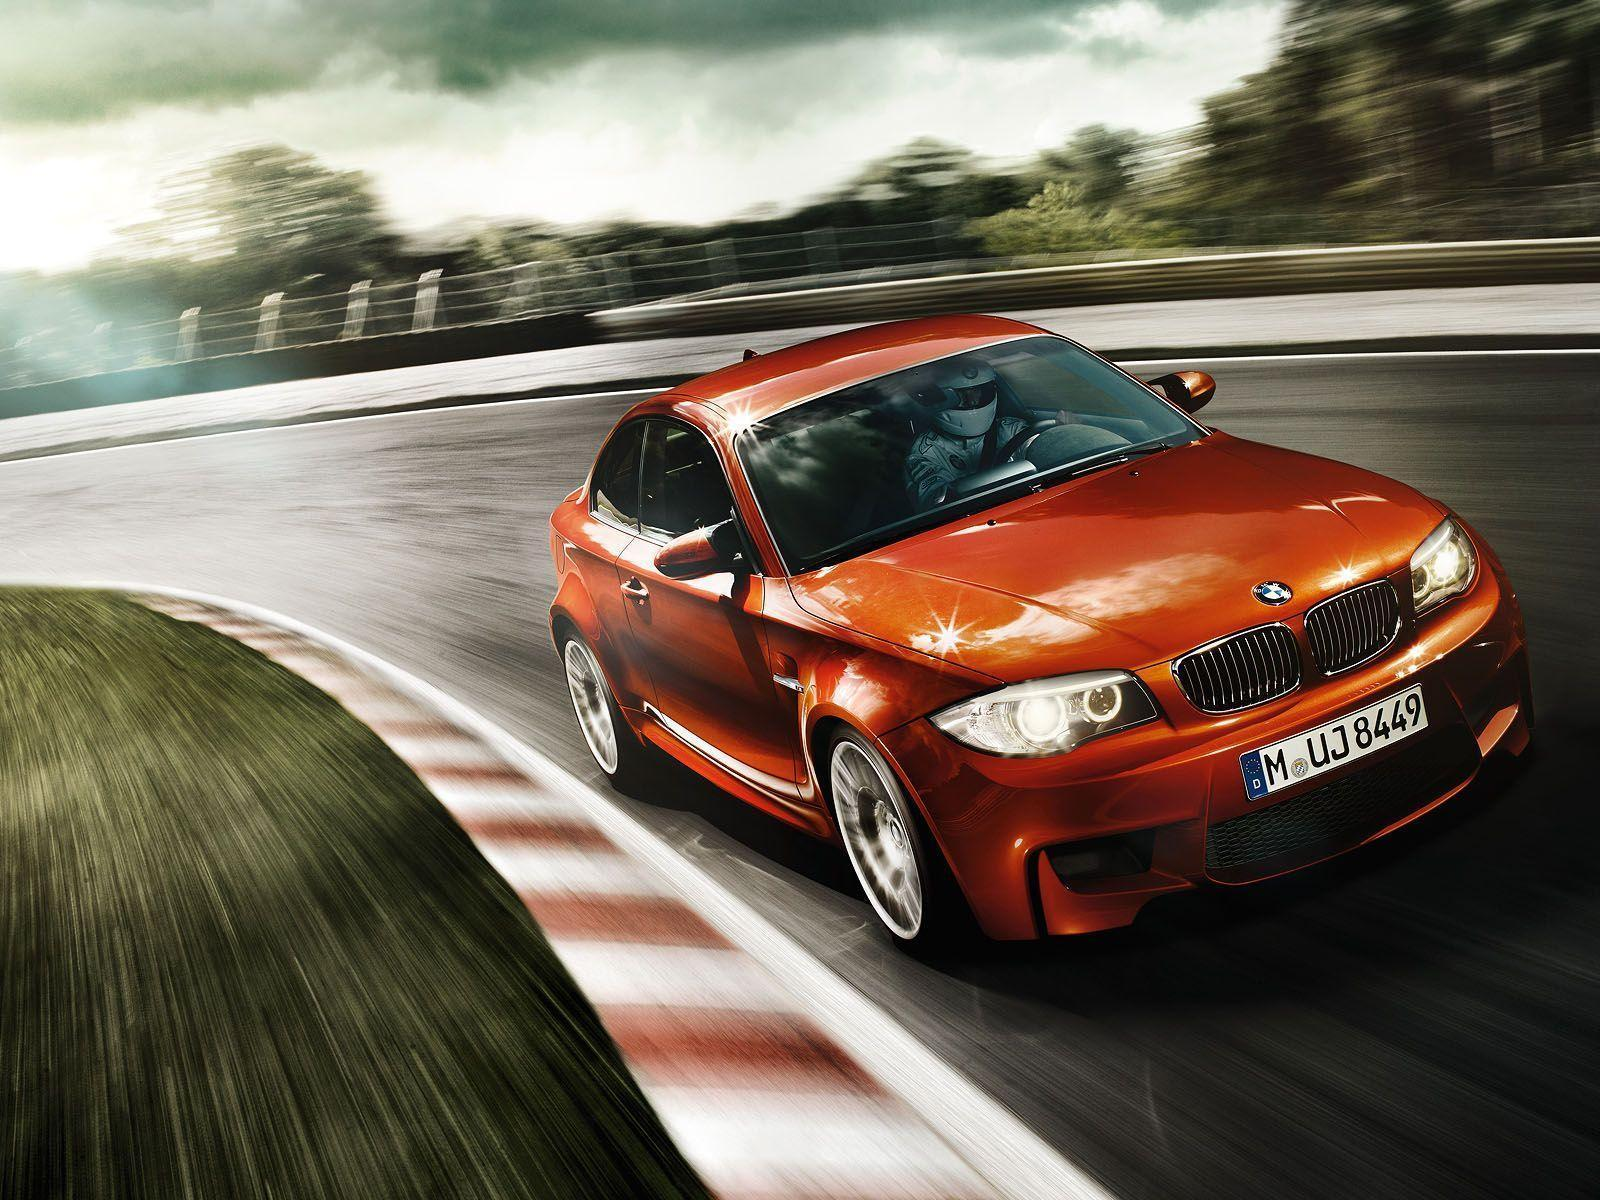 BMW M Coupe Wallpapers - HD Wallpapers Inn